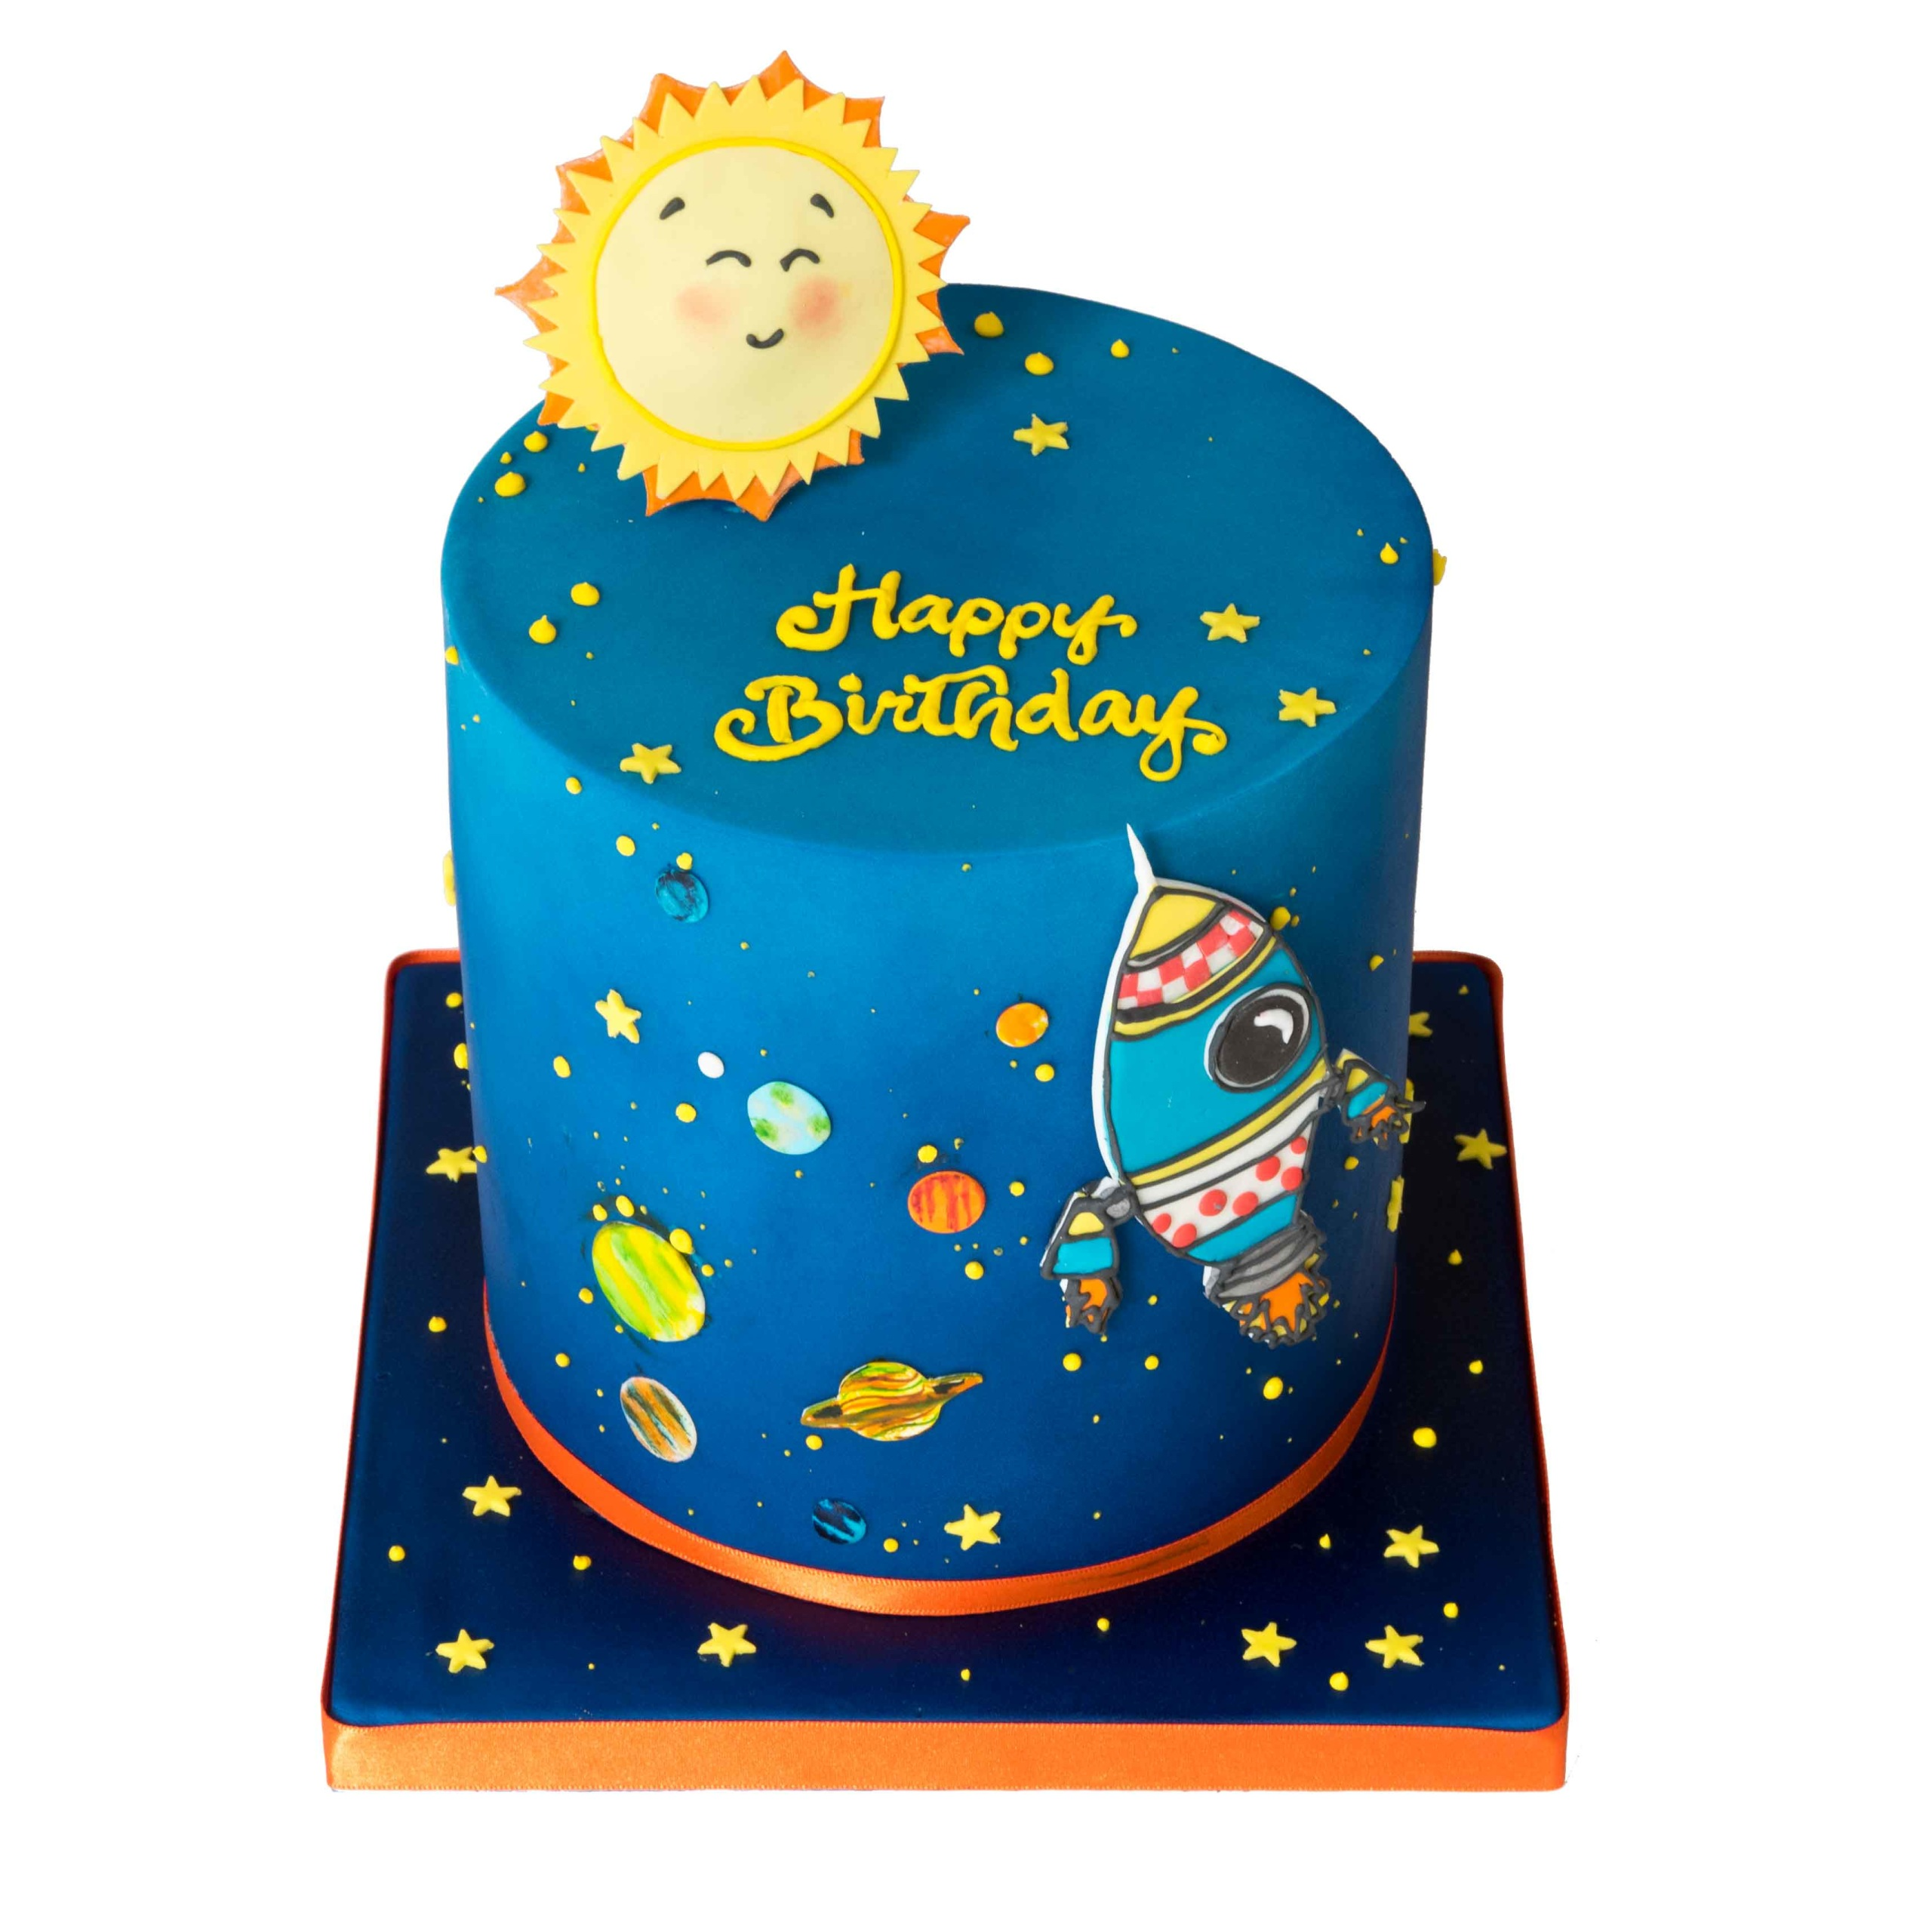 Into Outer Space Birthday Cake